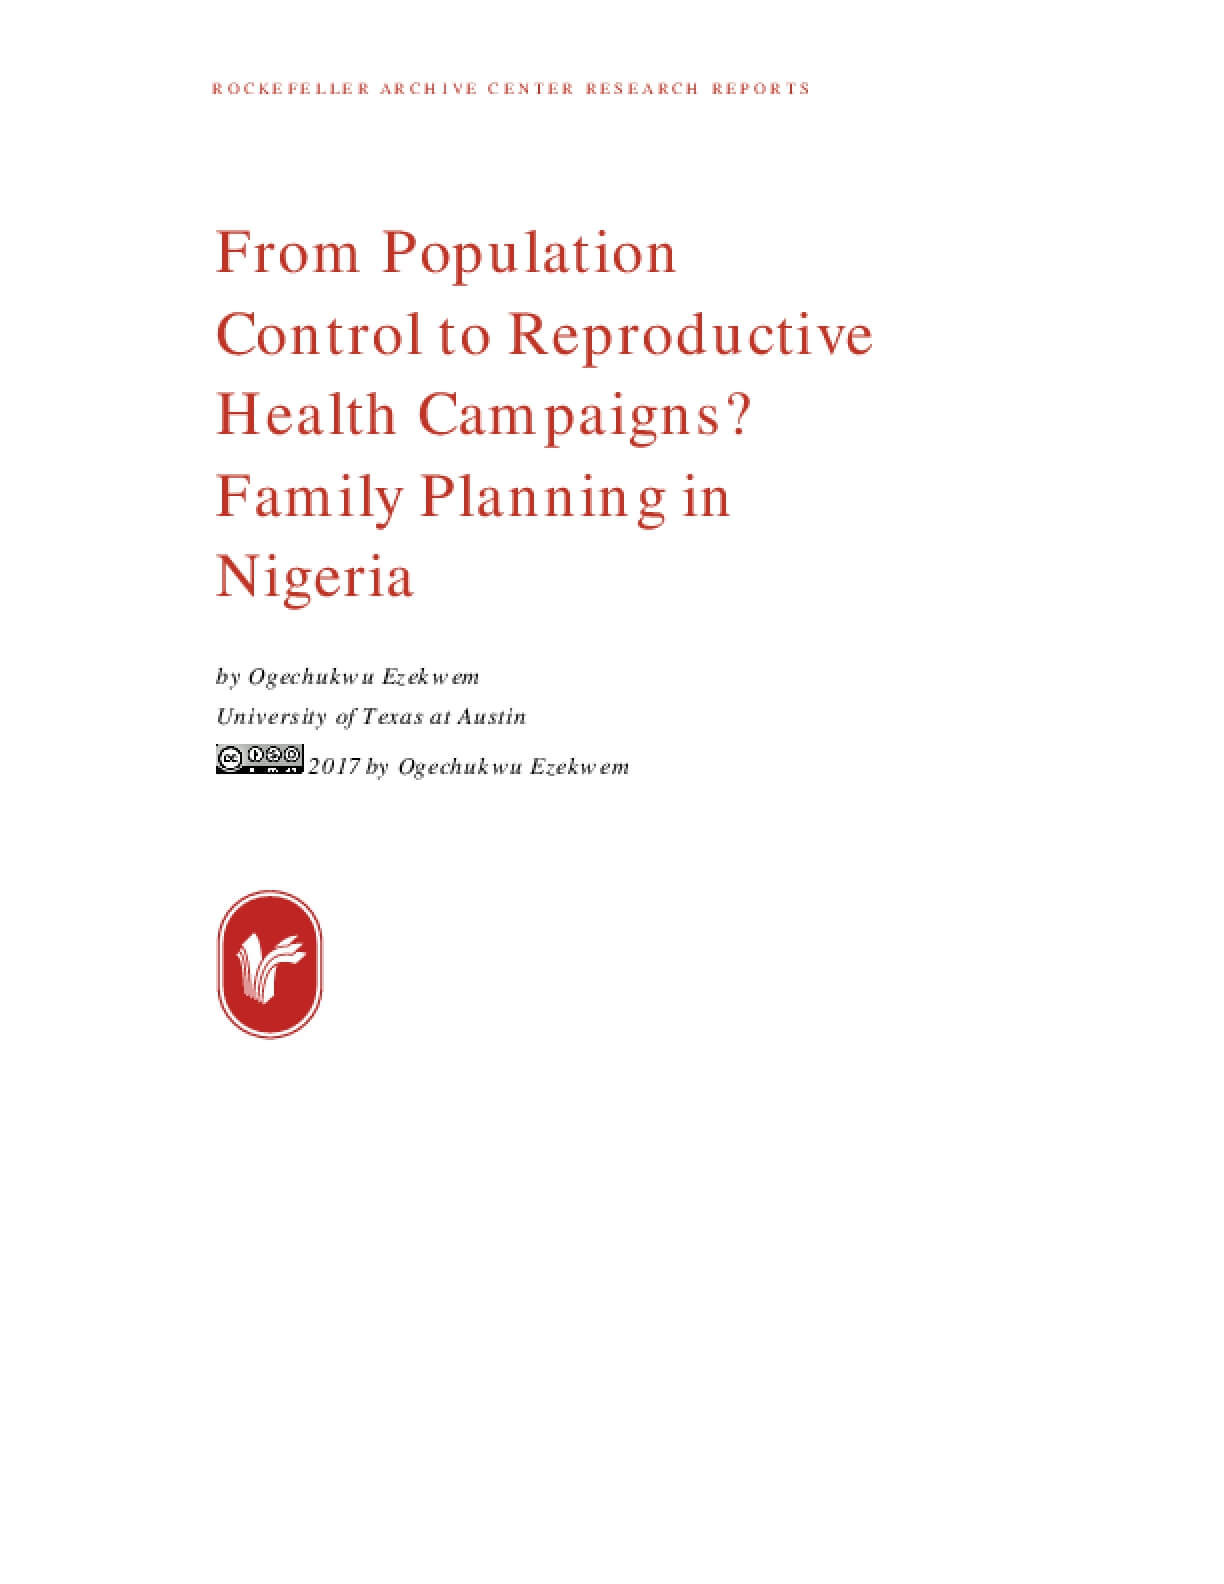 From Population Control to Reproductive Health Campaigns? Family Planning in Nigeria